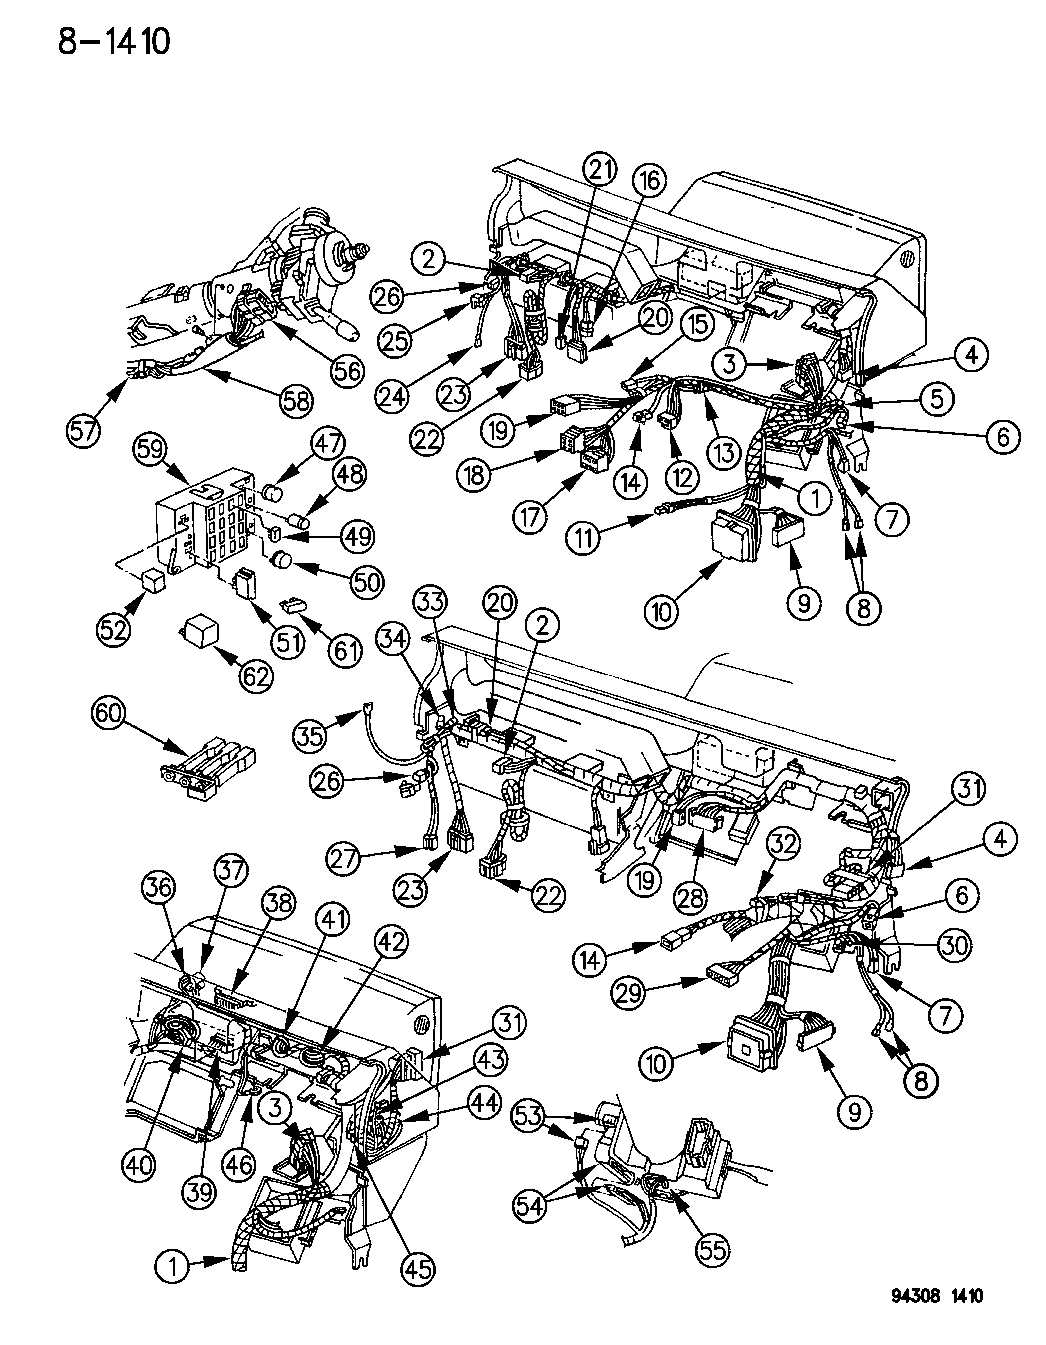 1996 Dodge Dakota Wiring - Instrument Panel